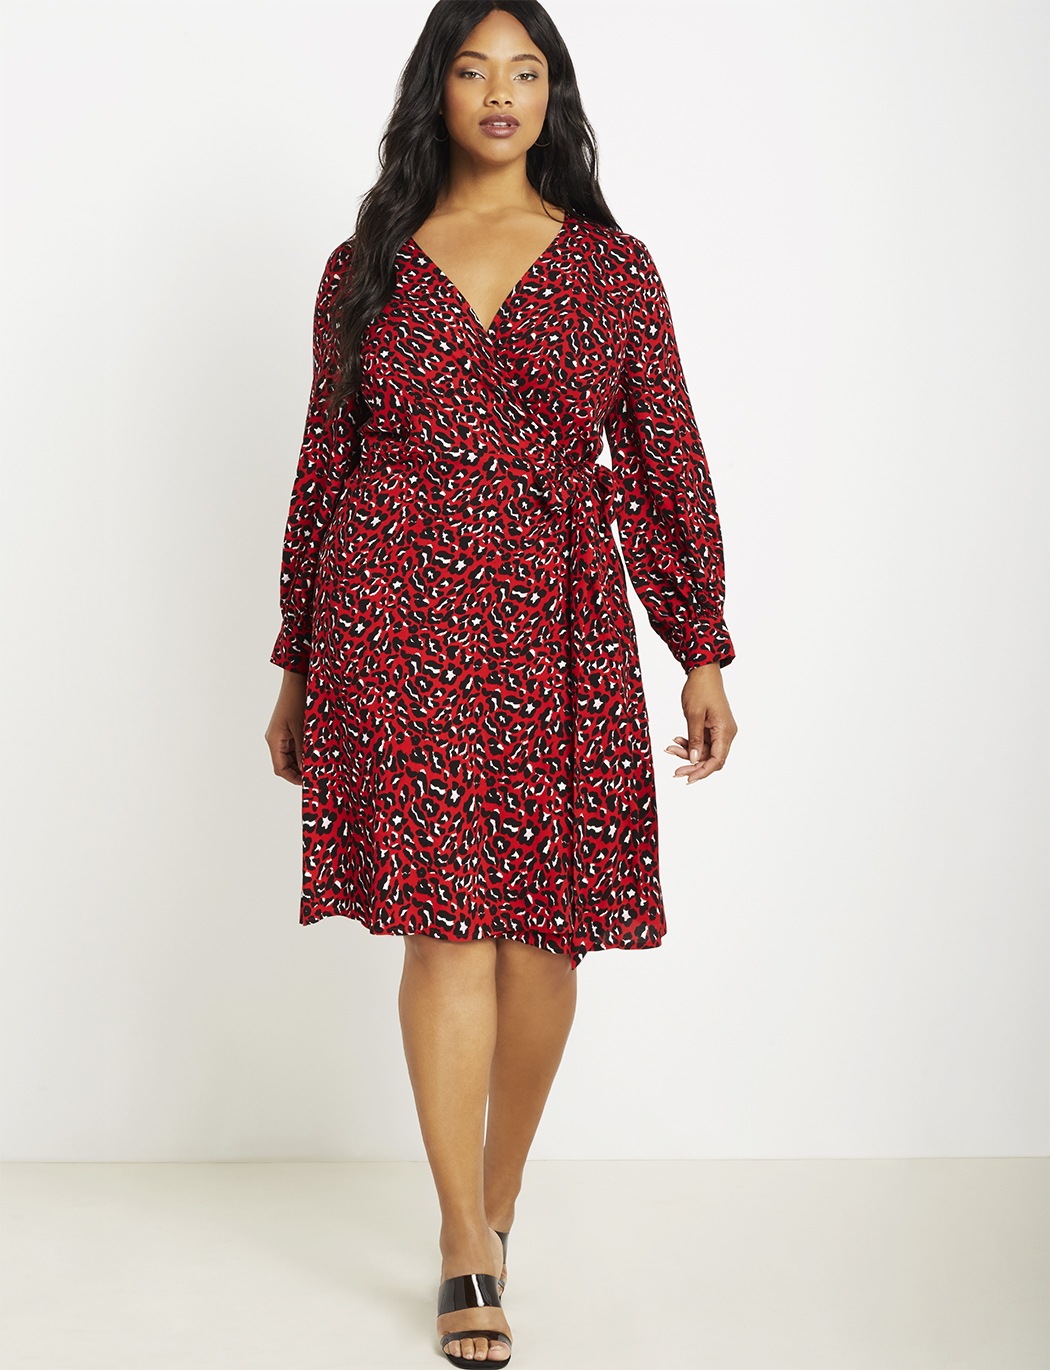 Long Sleeve Wrap Dress | Women\'s Plus Size Dresses | ELOQUII